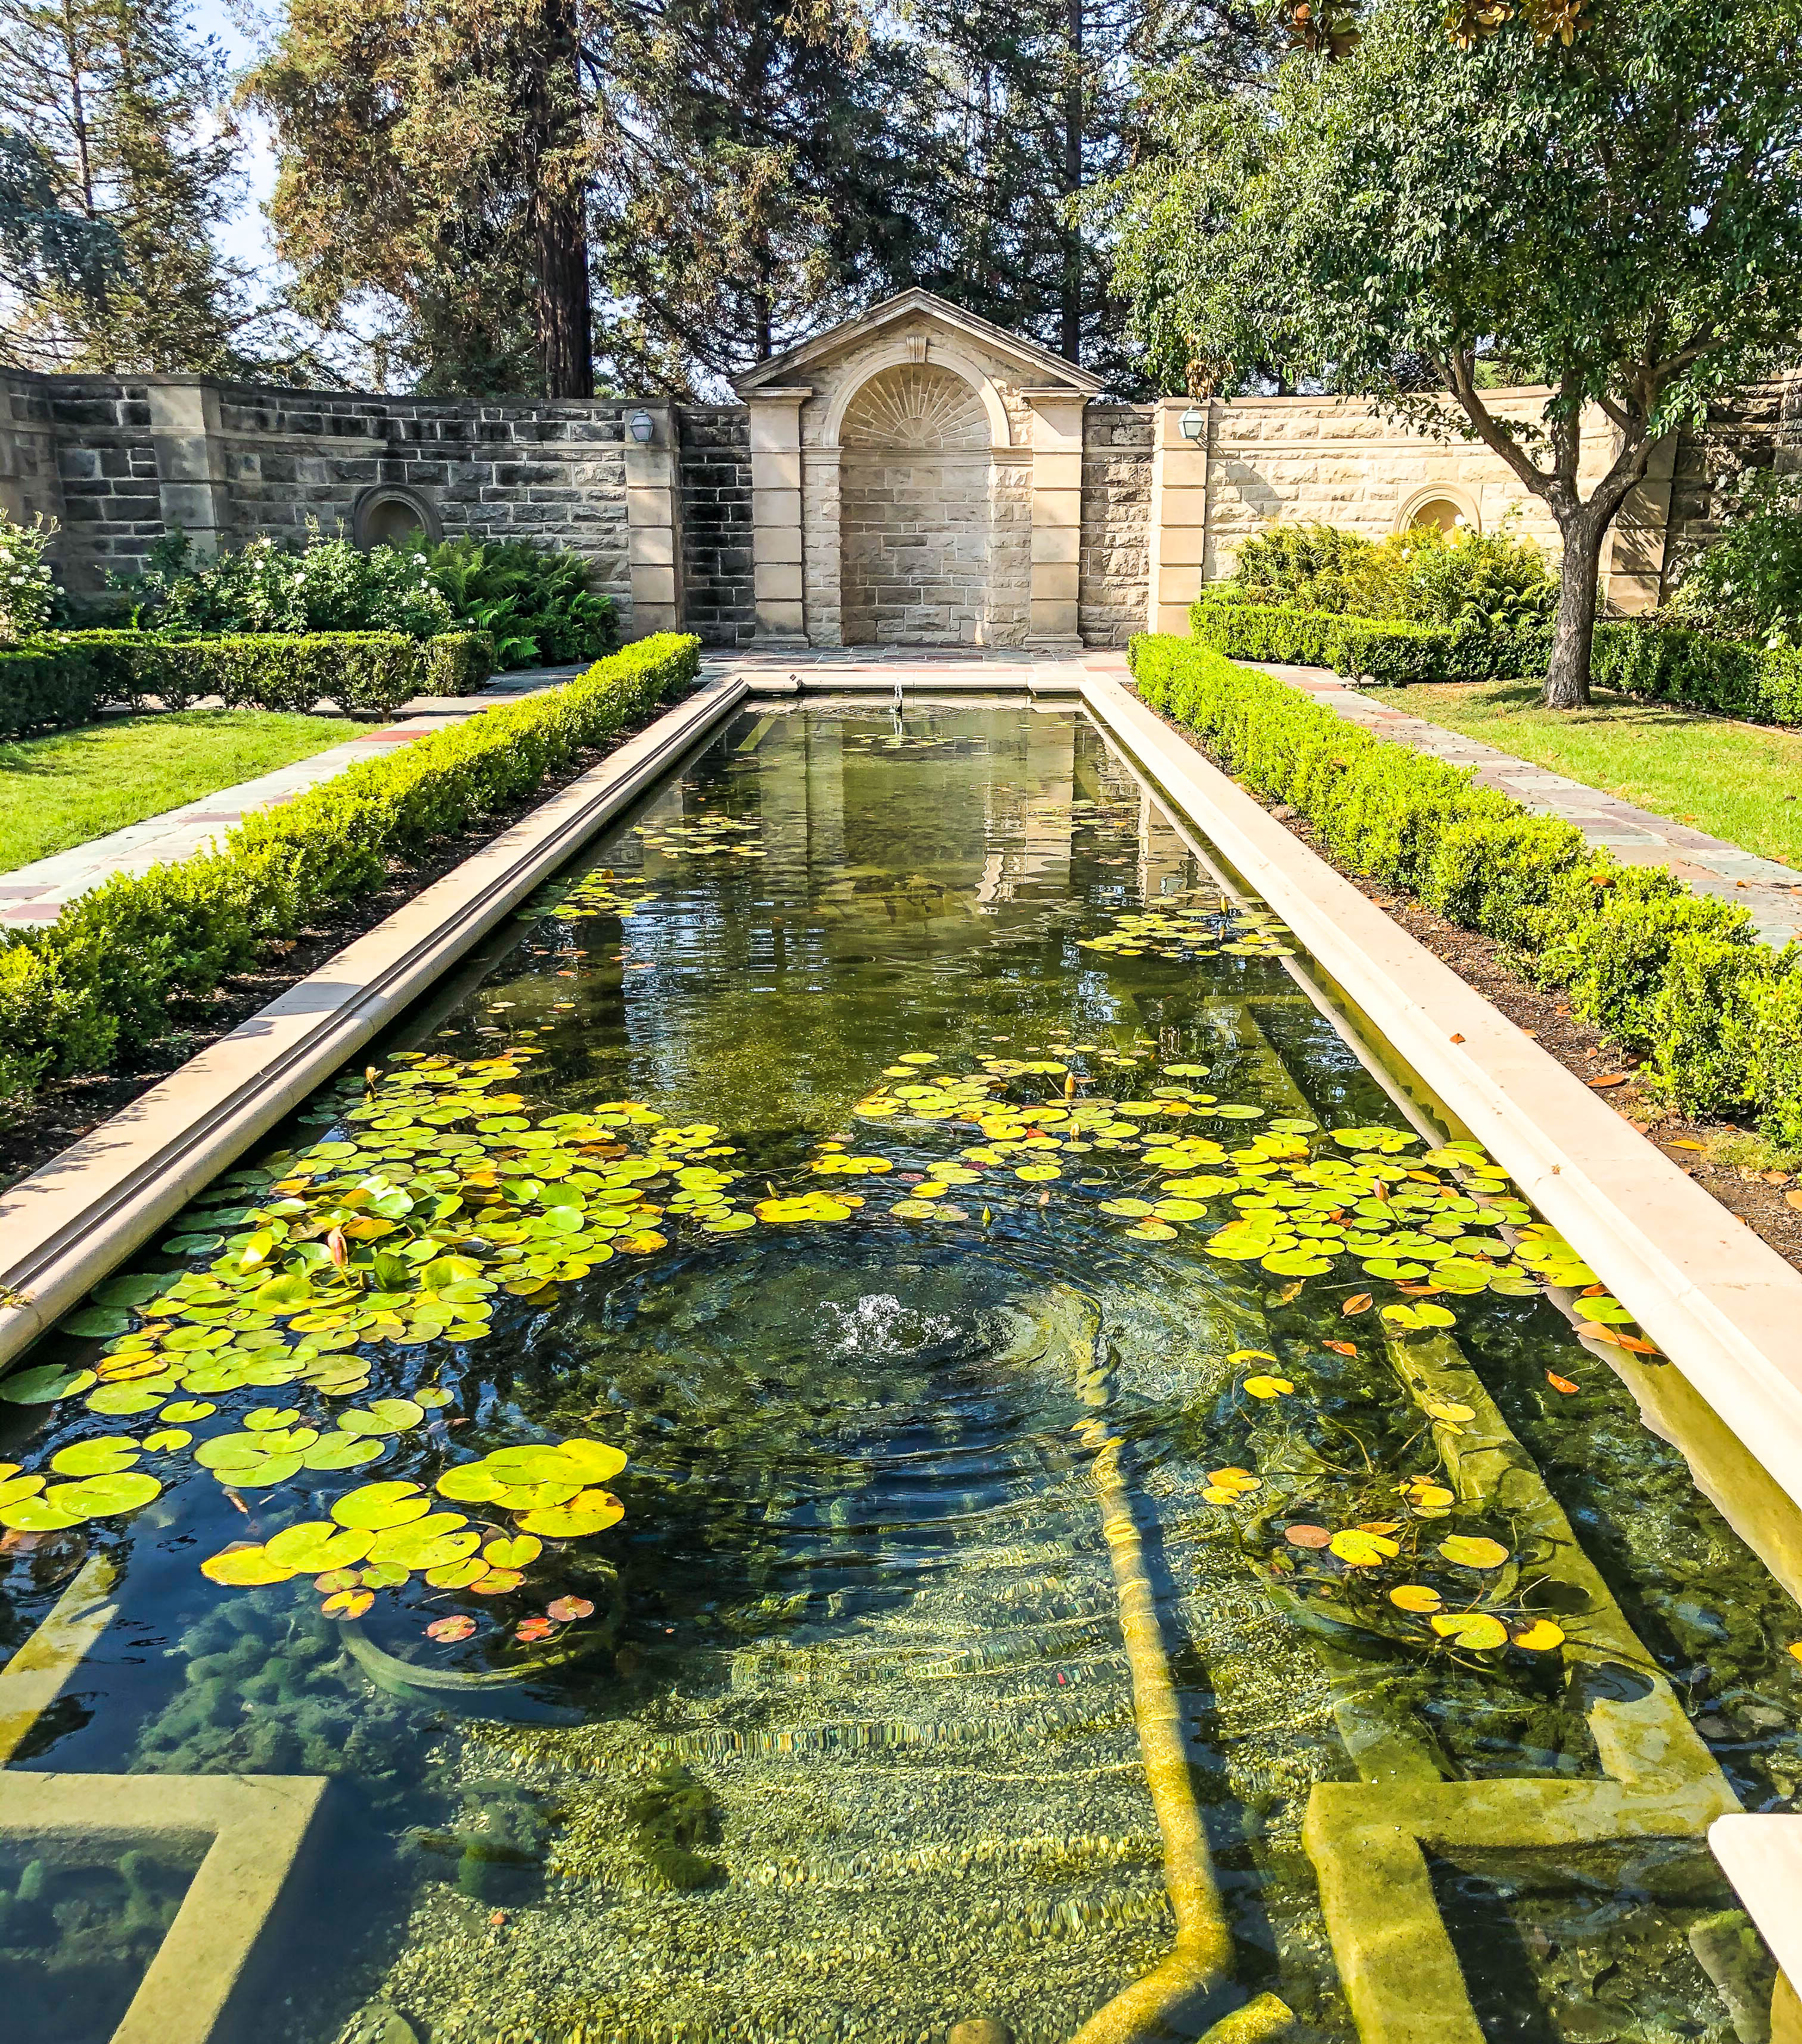 Top 10 Historic Houses to Rent in Los Angeles for Your Special Event www.roadsanddestinations.com